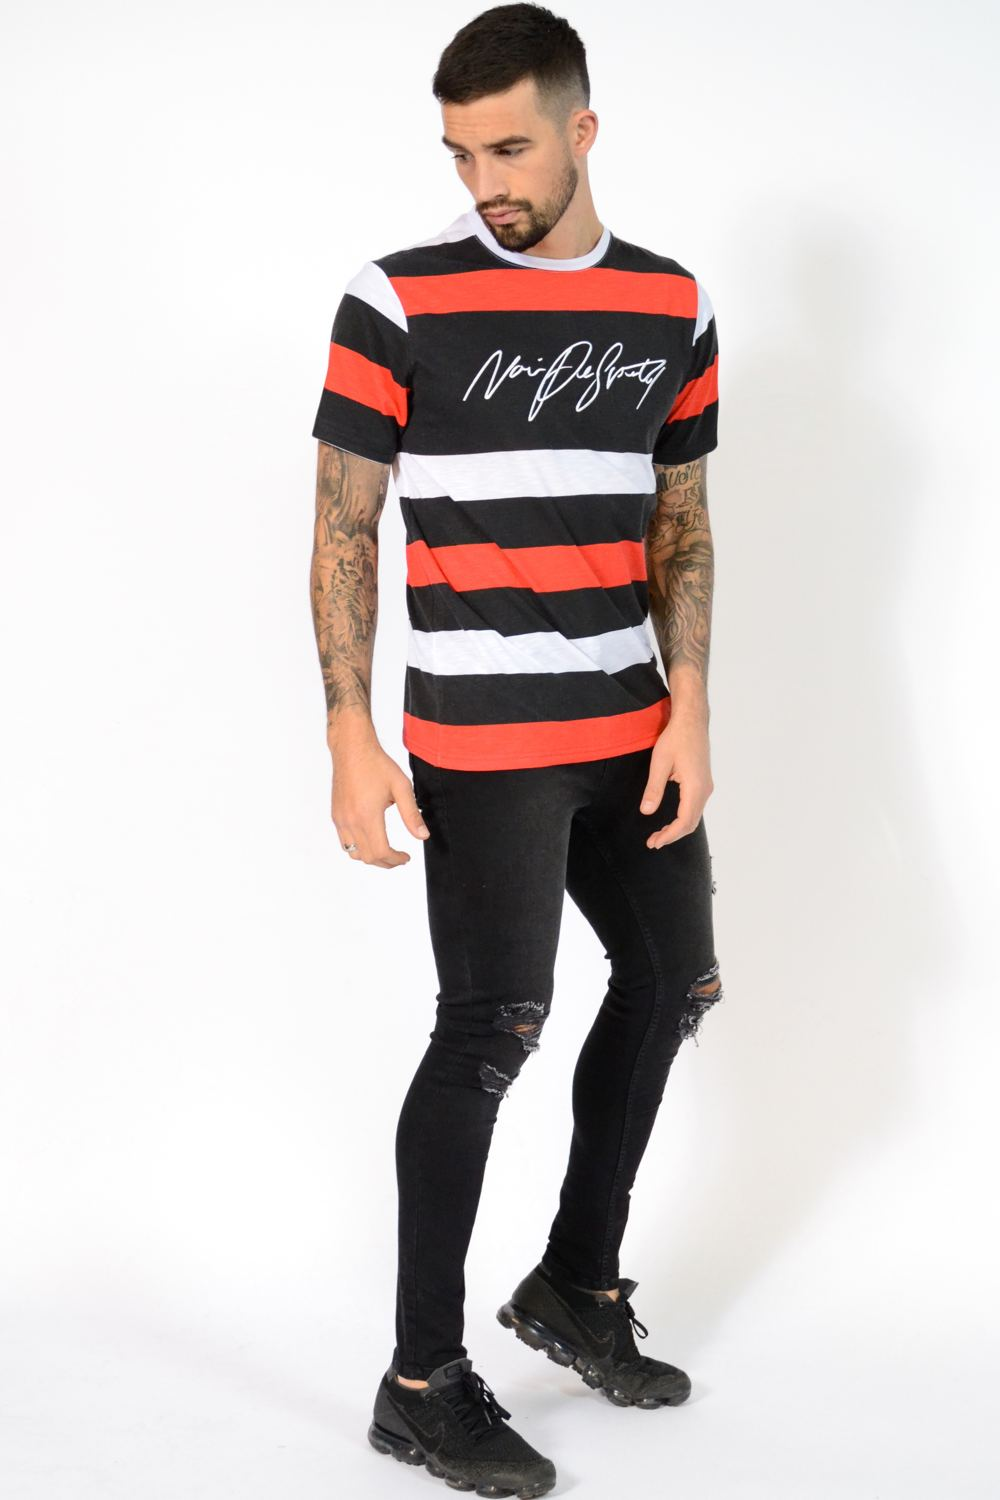 Noir De Sportif Dennis Stripe T-Shirt - Black/White/Red - 2